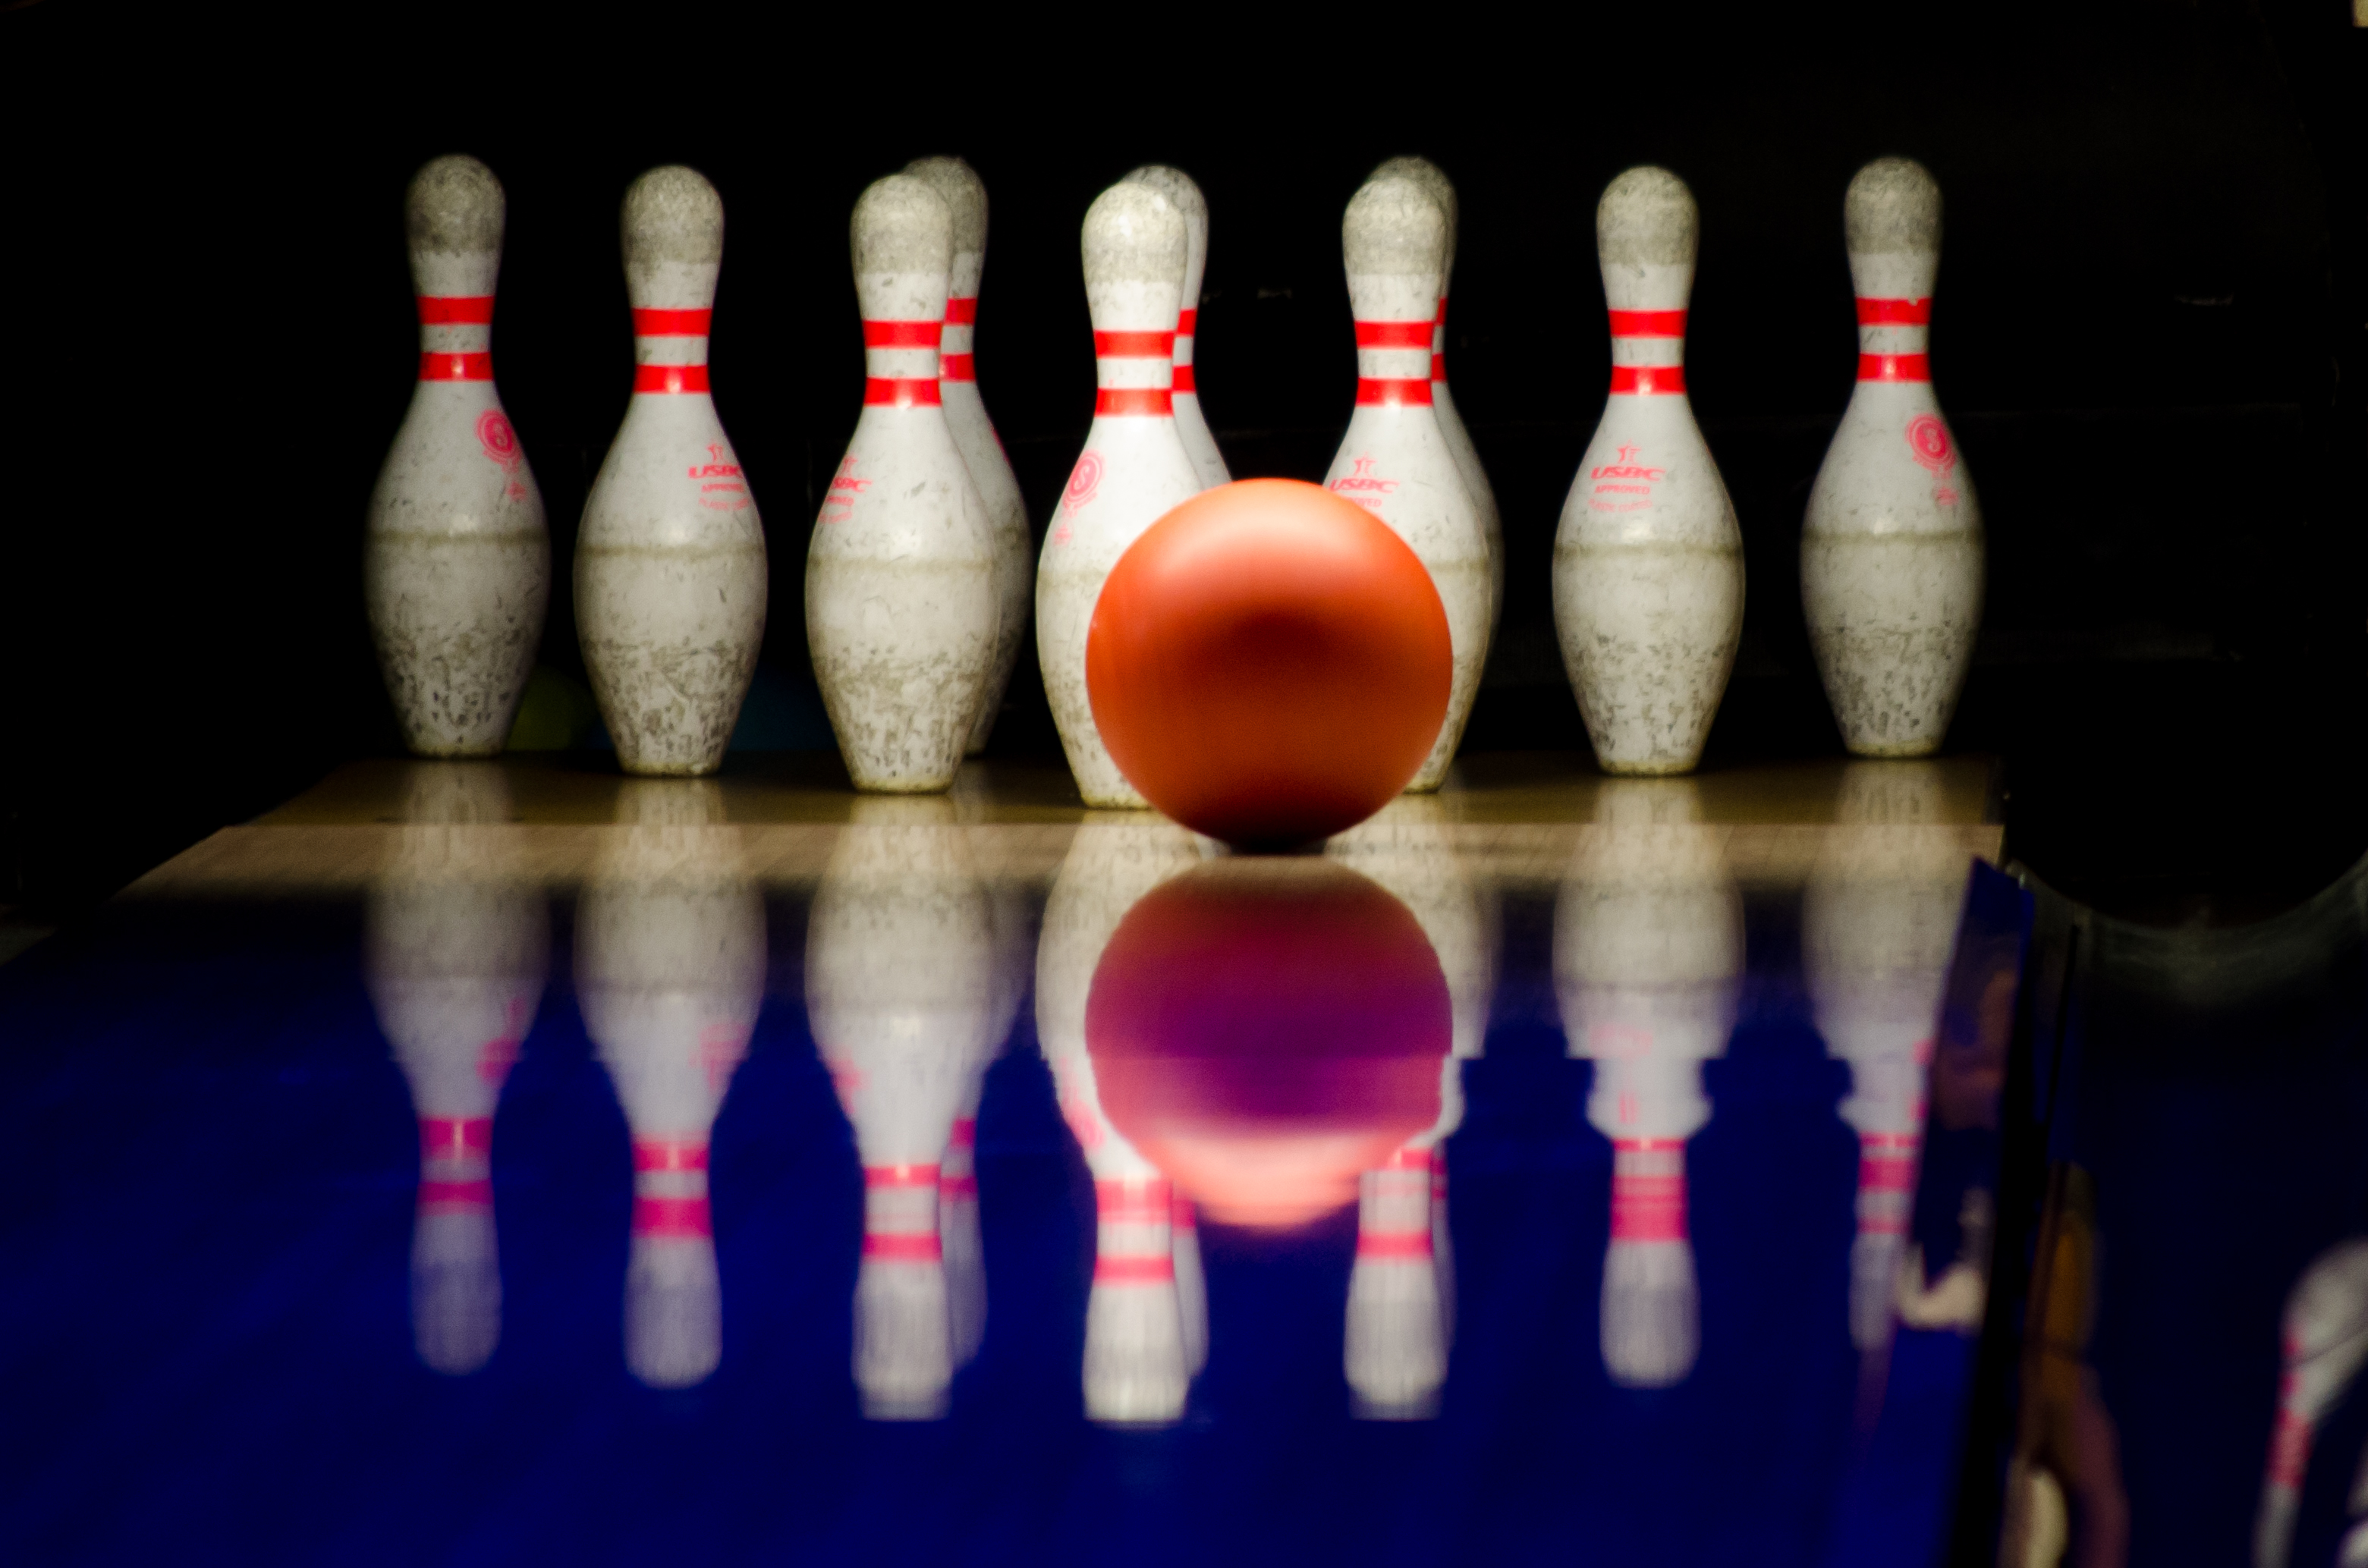 High Resolution Wallpaper | Bowling 3121x2067 px